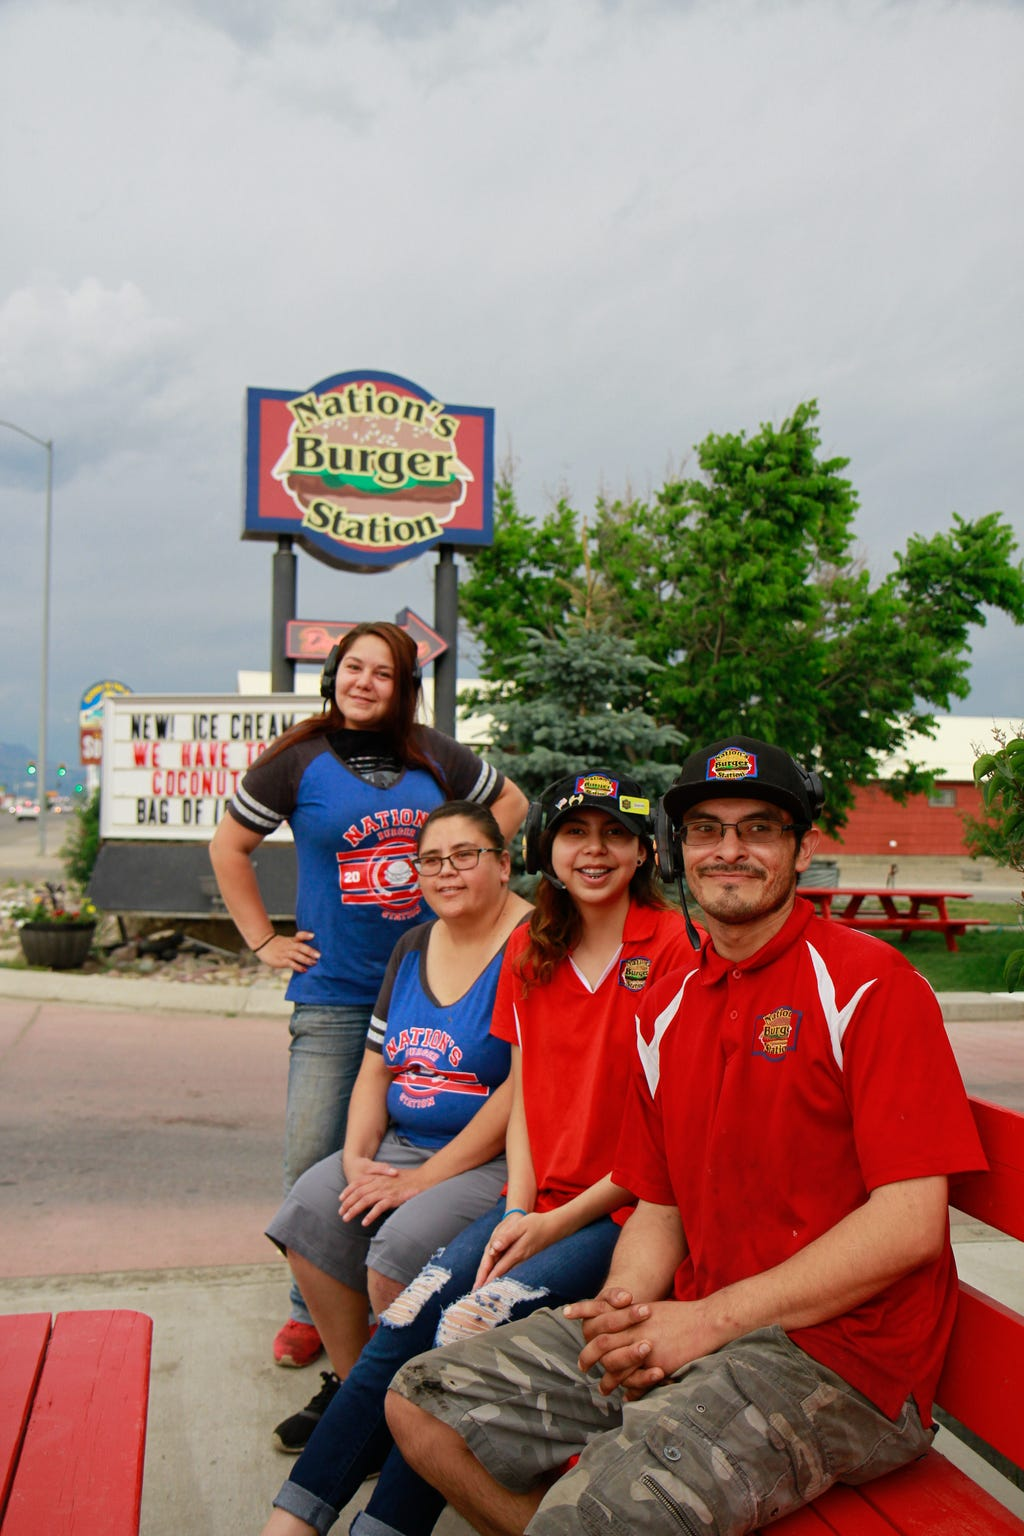 Carrie, Irs, Shanna Jo and James took a quick photo-op break on Tuesday at Nation's Burger Station in Browning